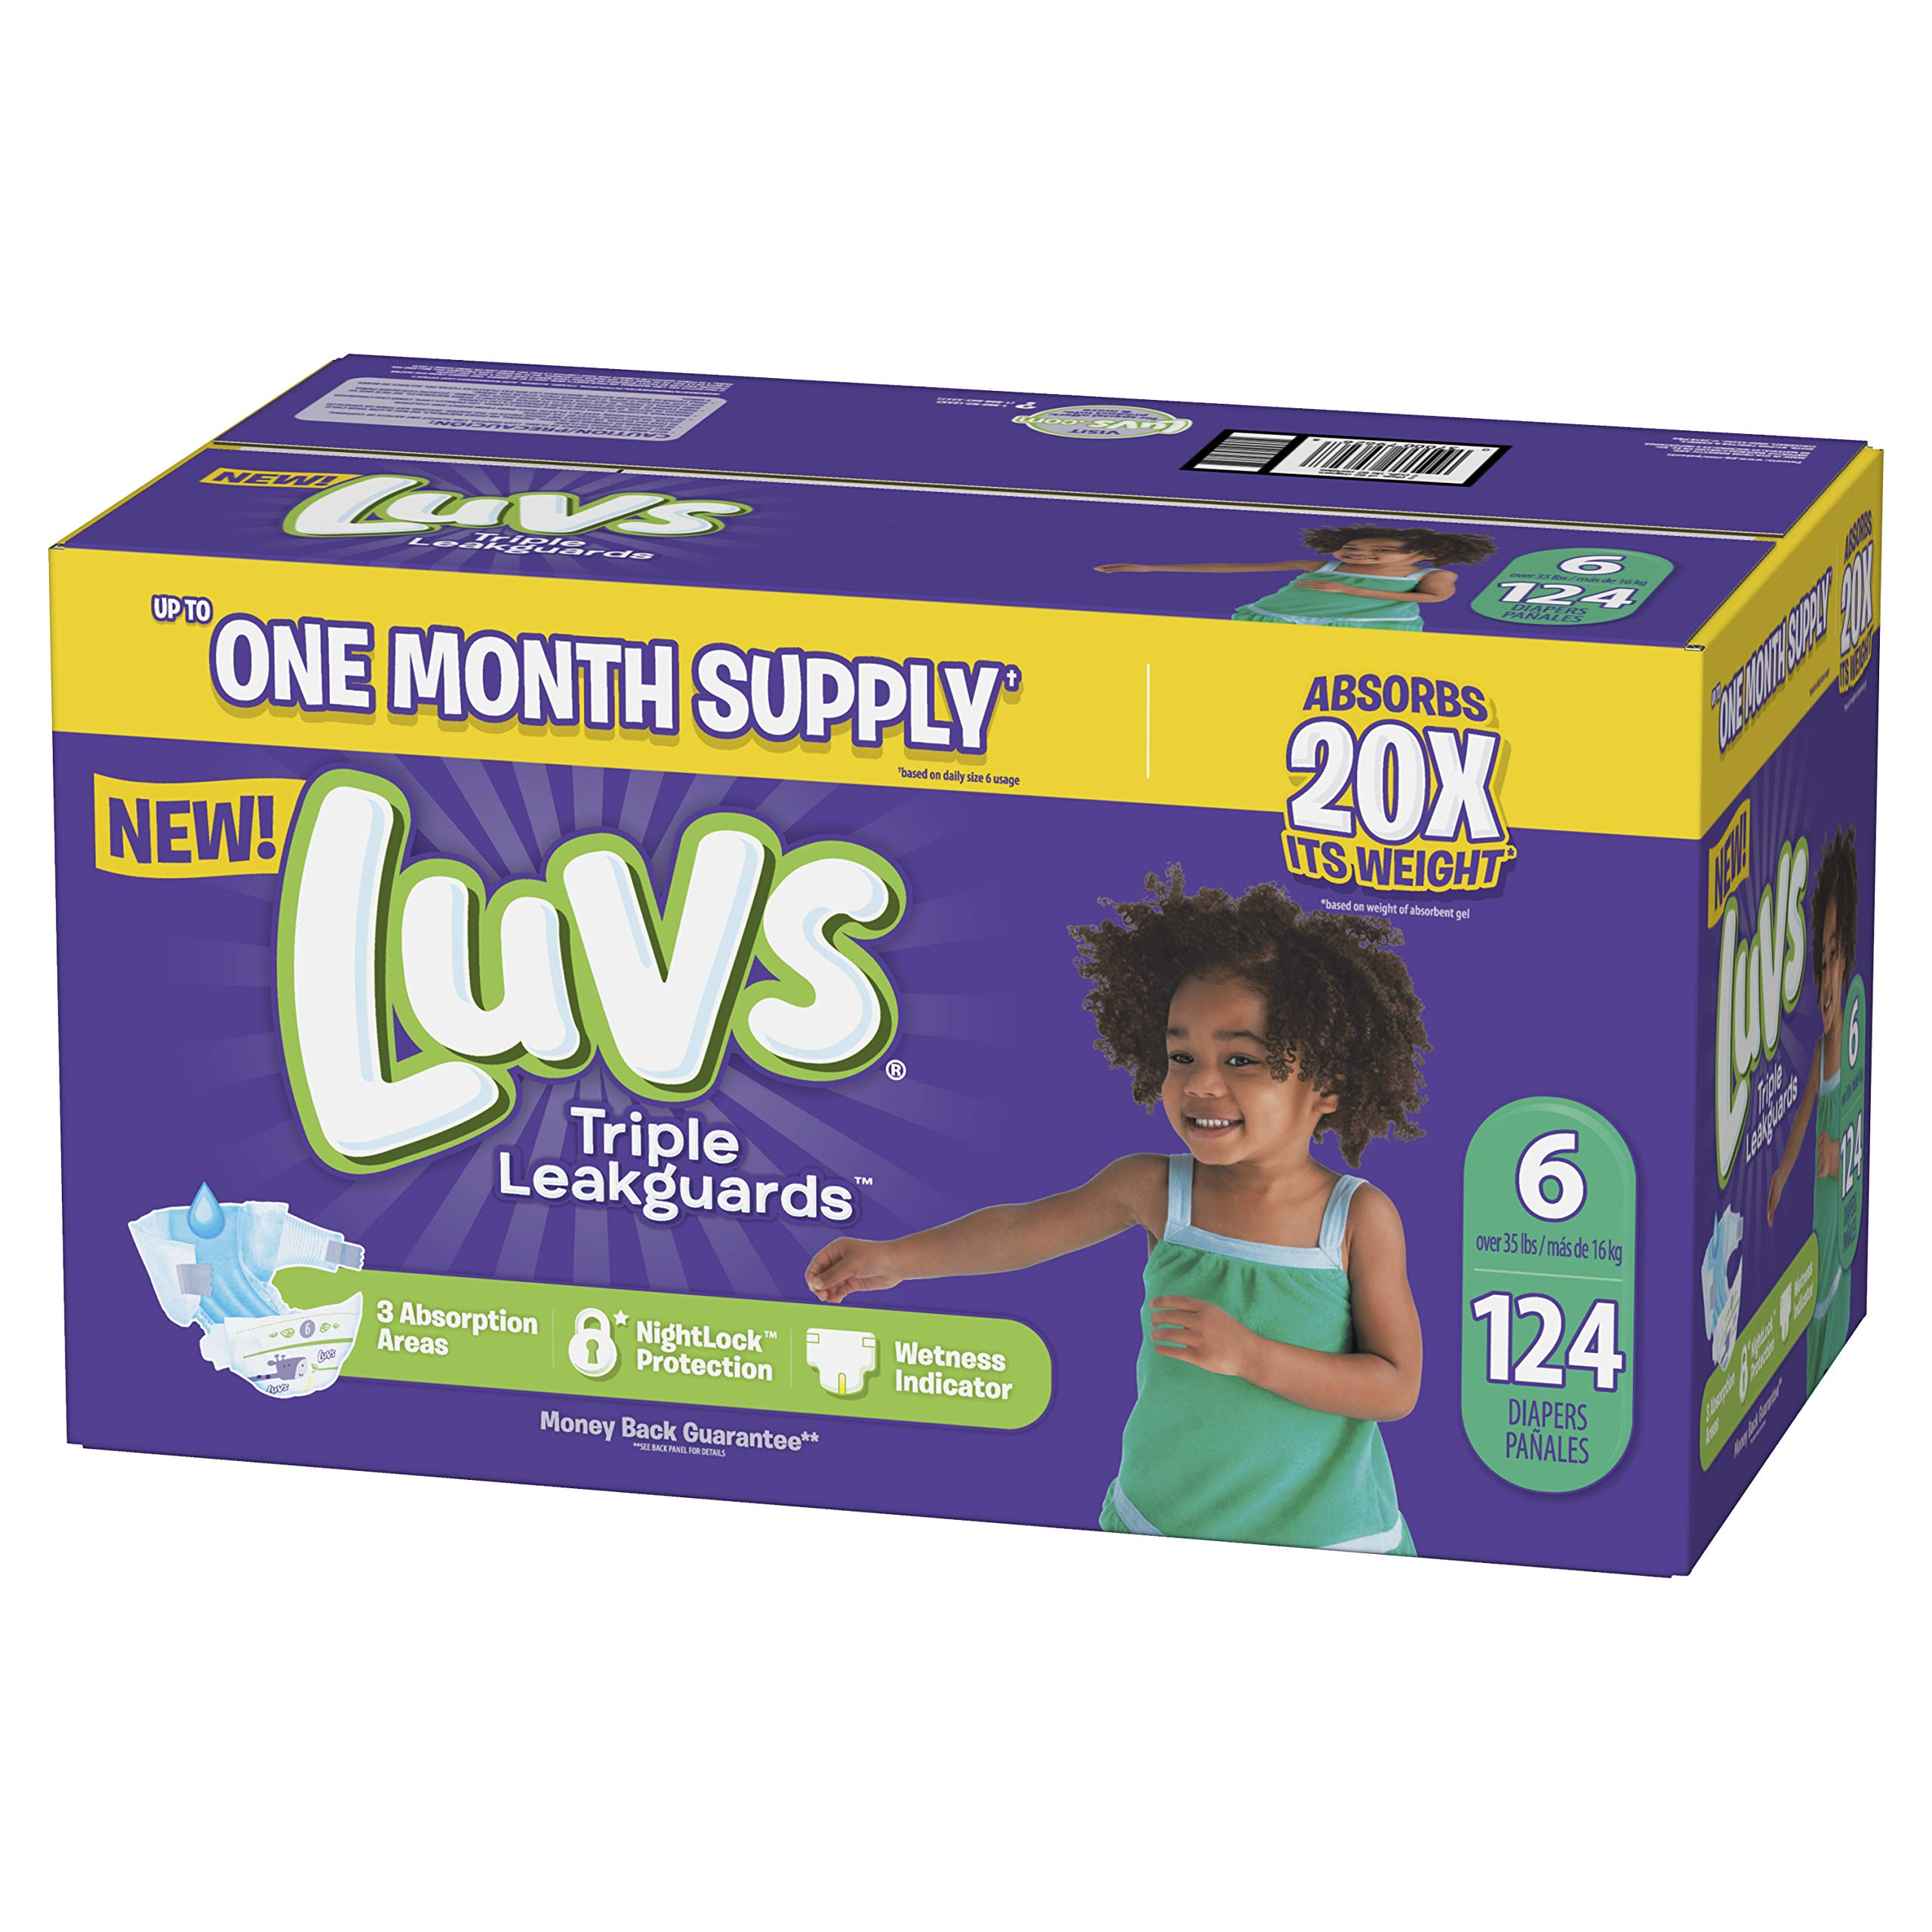 Diapers Size 6, 124 Count - Luvs Ultra Leakguards Disposable Baby Diapers, ONE MONTH SUPPLY (Packaging May Vary) by Luvs (LUVSD)